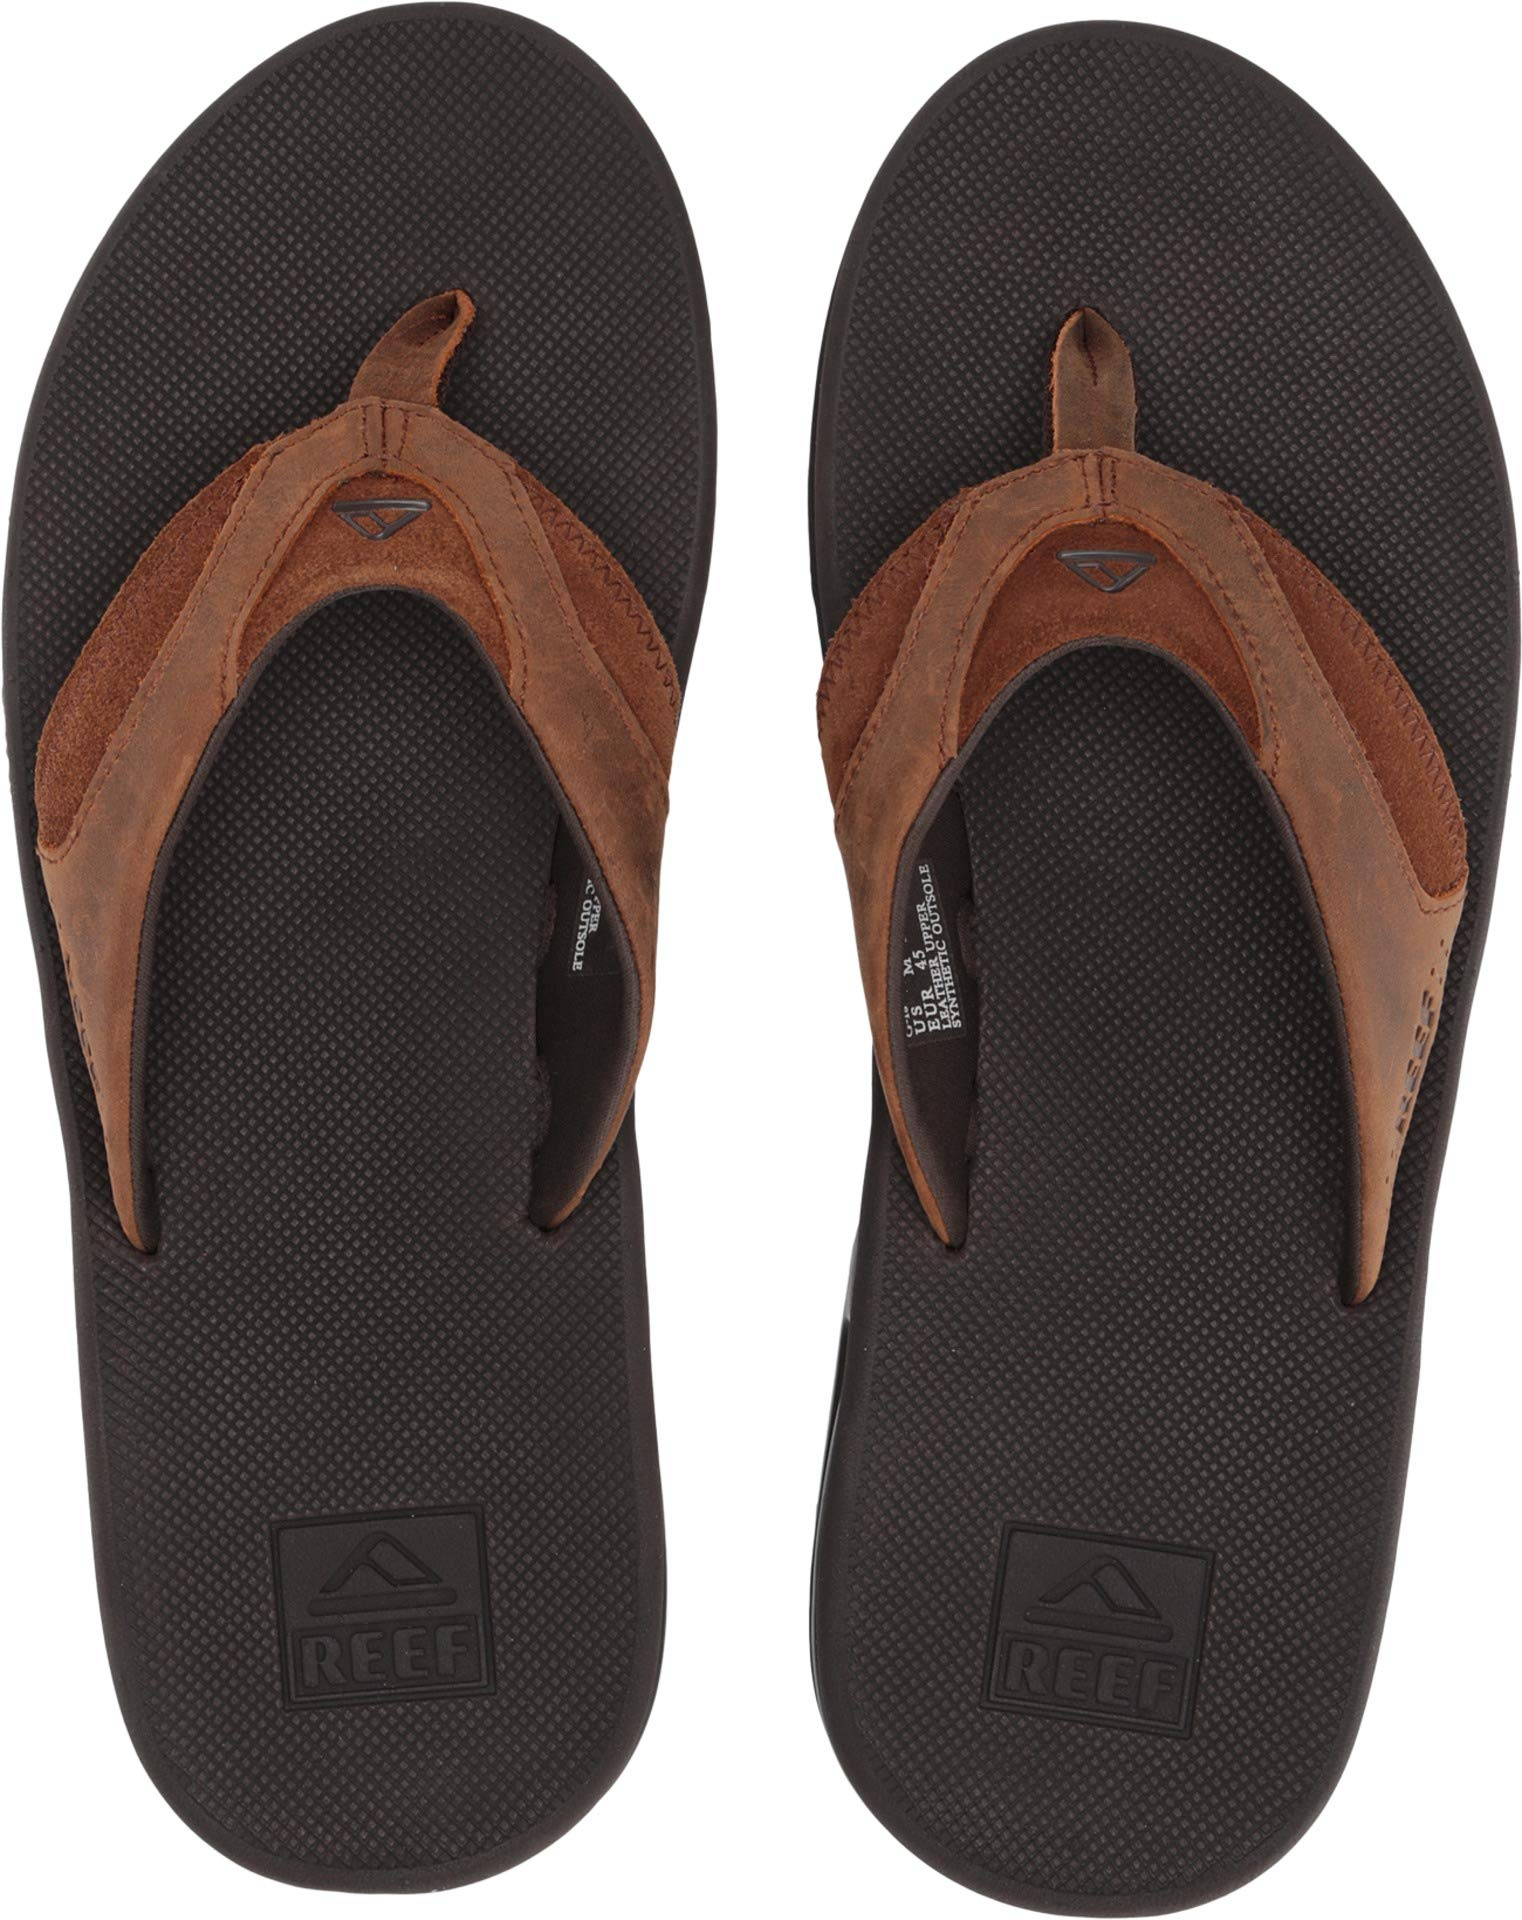 Reef Men's Leather Fanning Sandal Bronze 11 Medium US